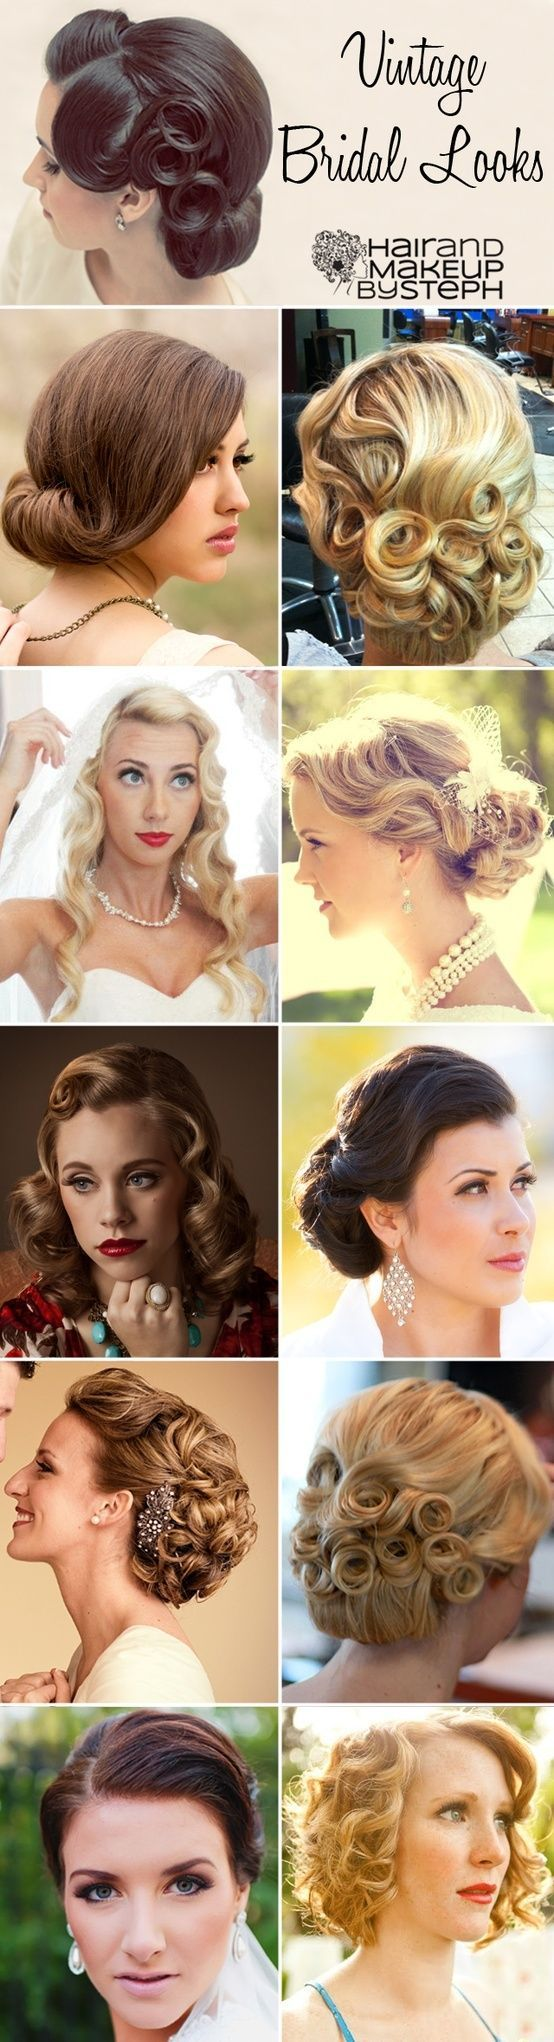 Vintage Hair...the inspiration for my wedding hair style was the top photo!